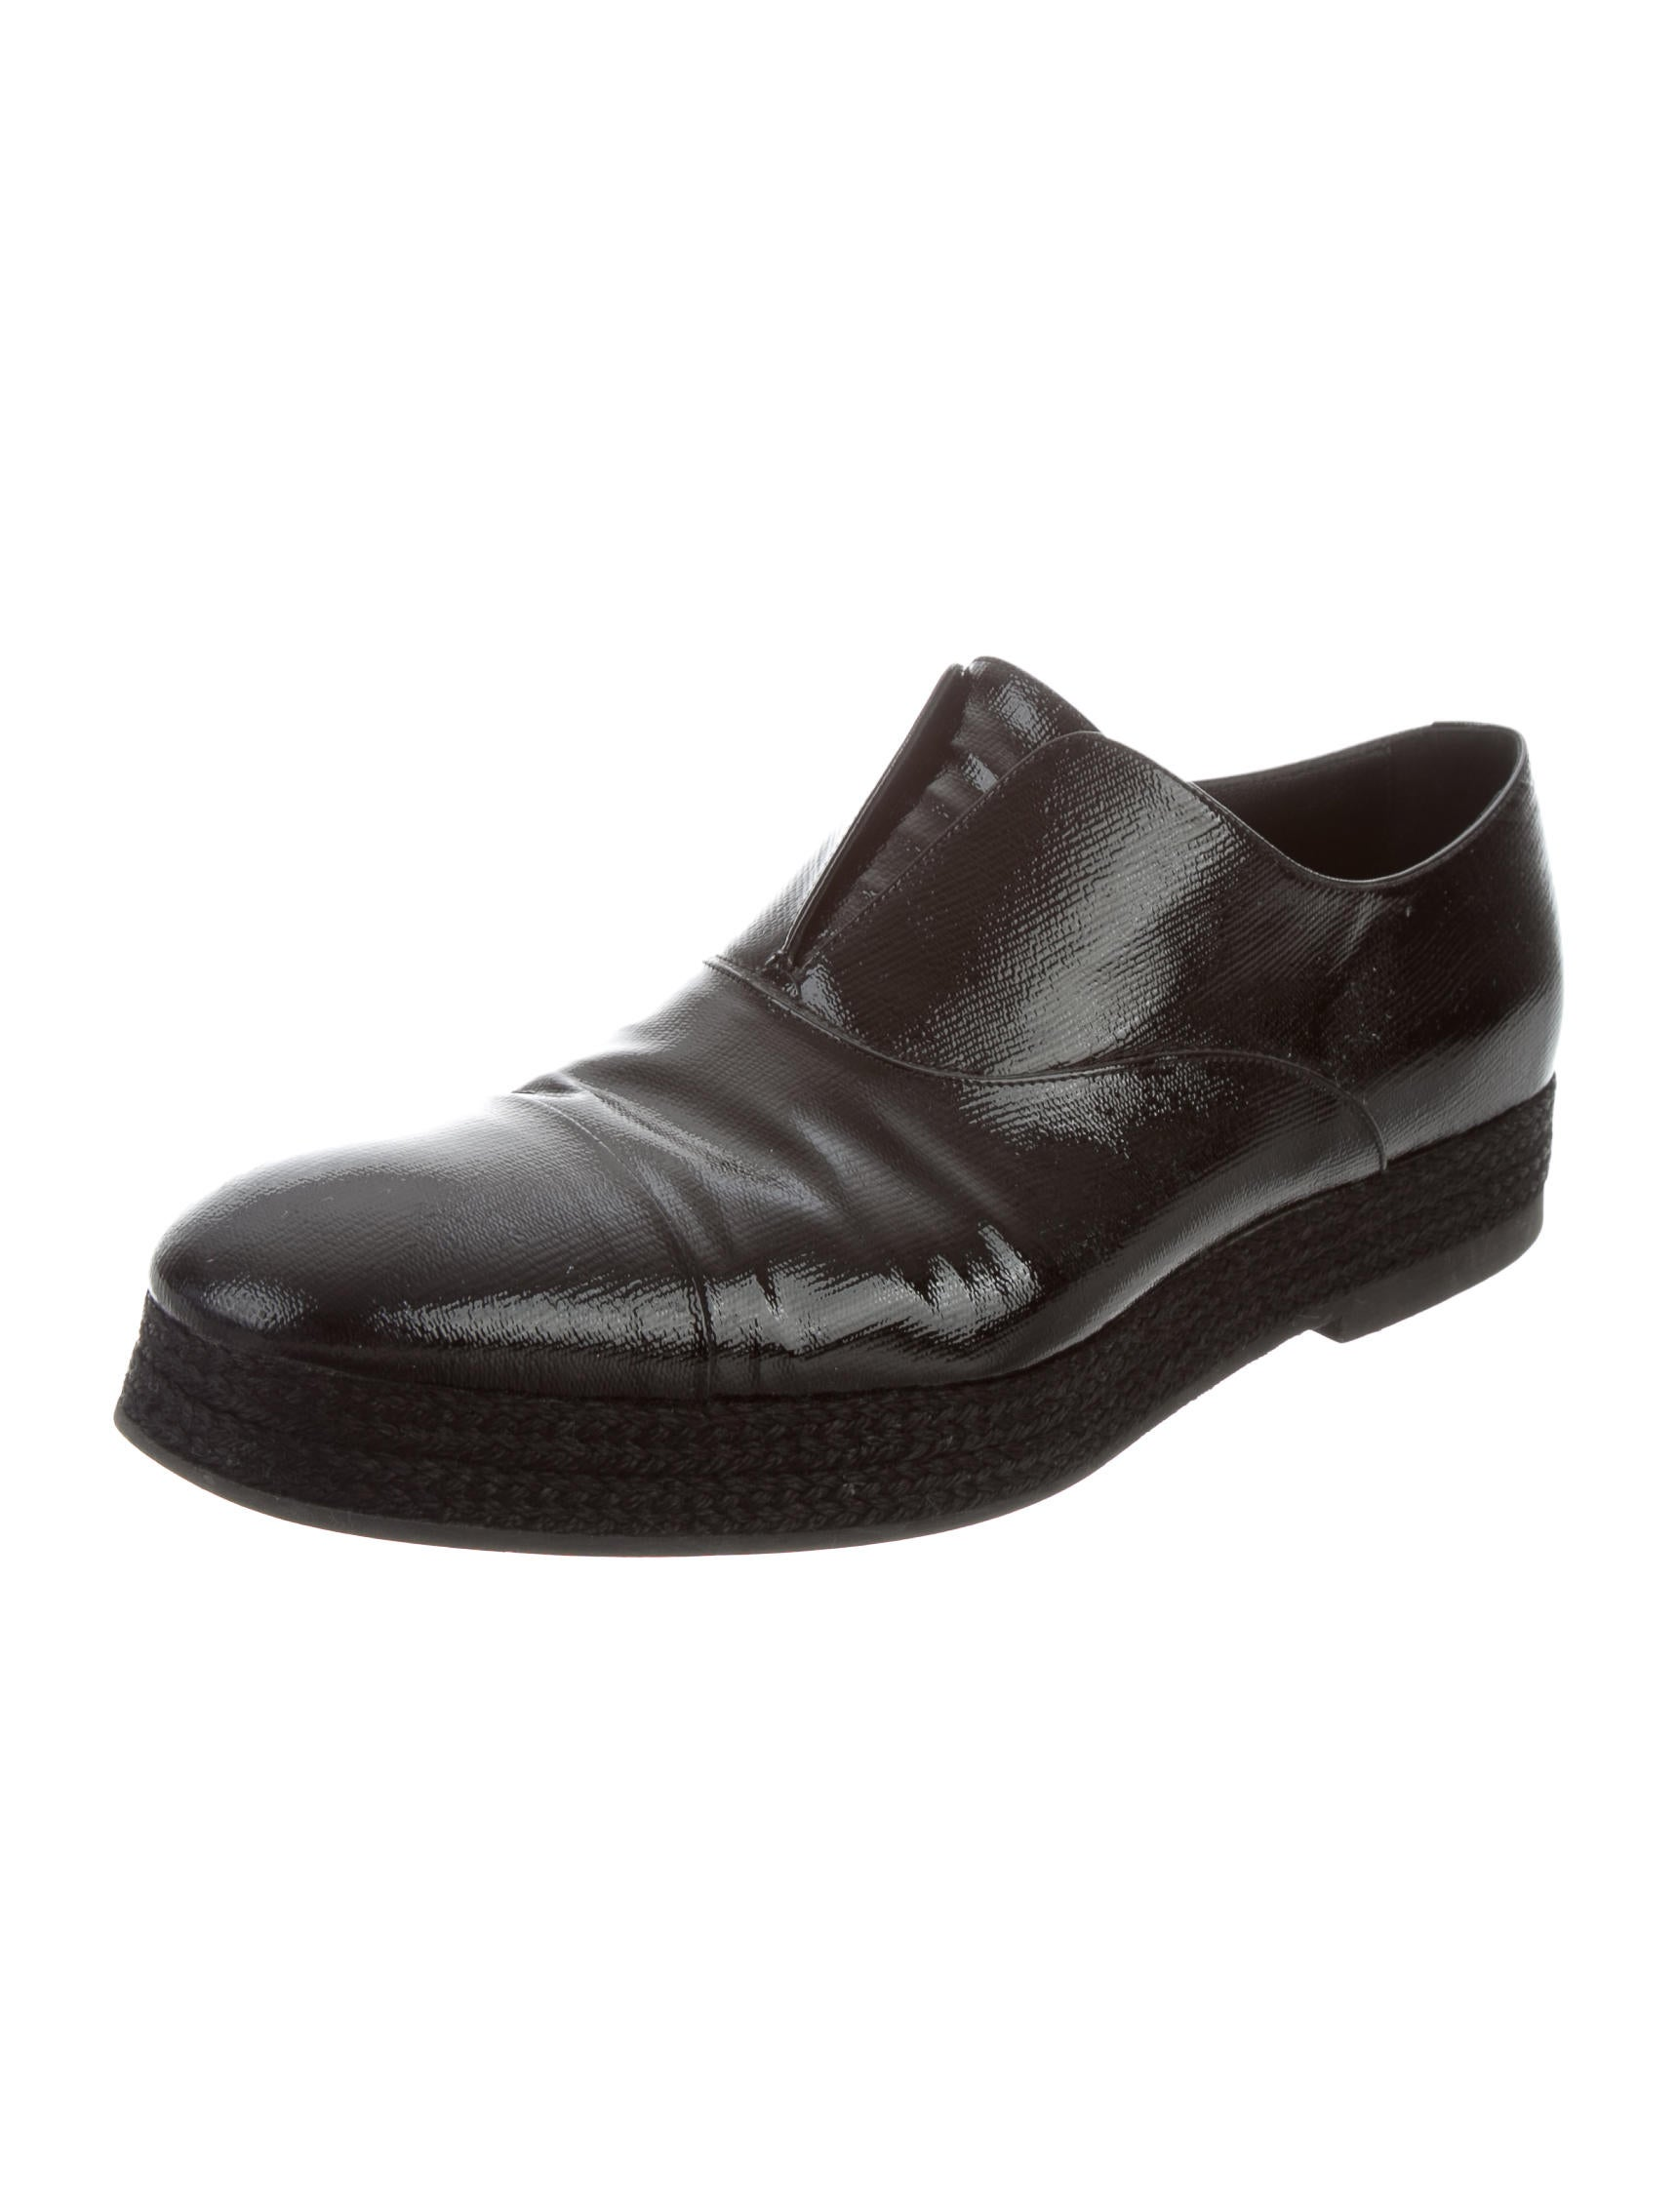 yves laurent patent leather laceless derby shoes